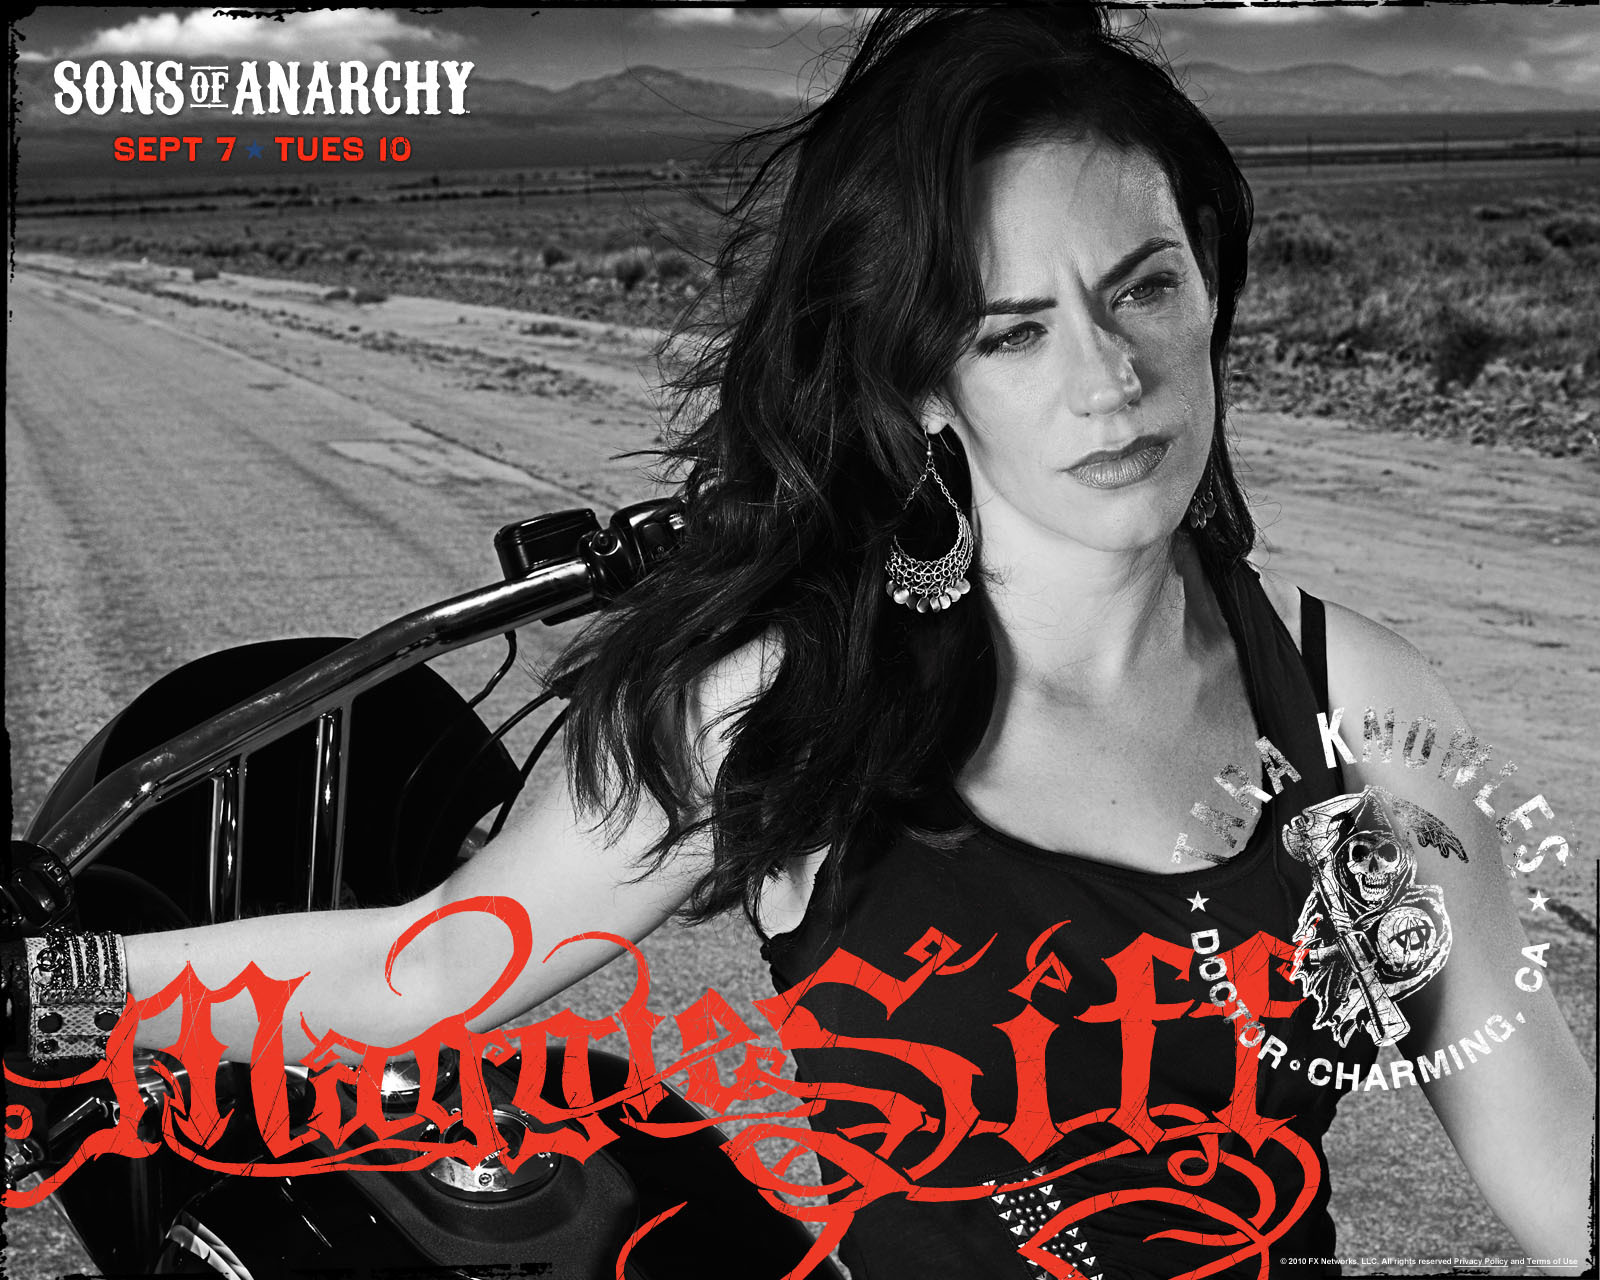 image Maggie siff from sons of anarchy